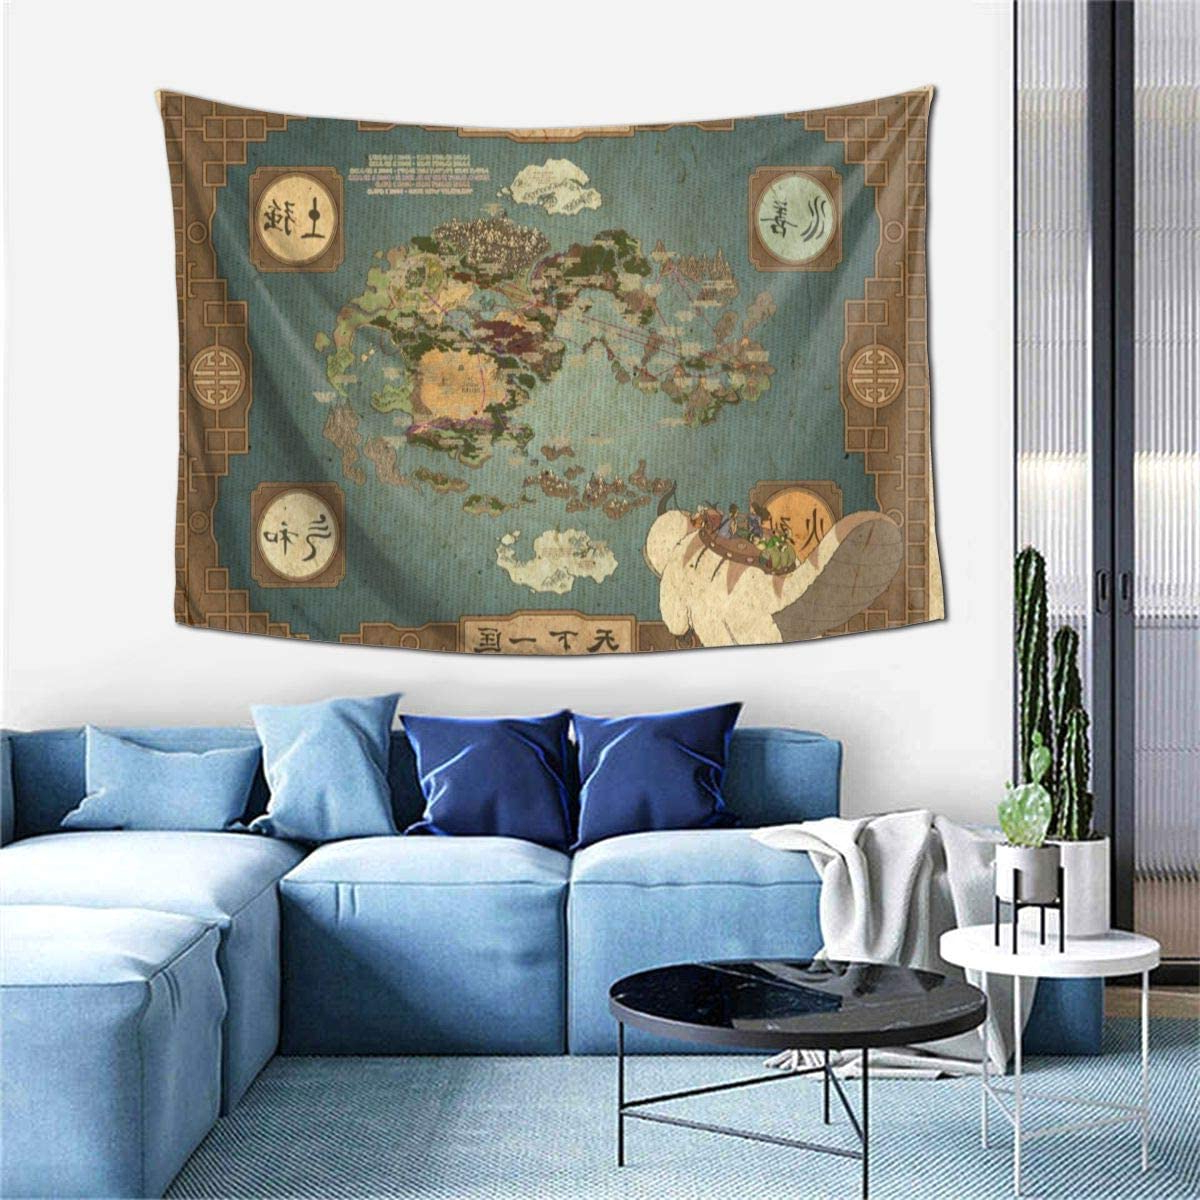 Blended Fabric Living Life Tapestries Within Famous Avatar The Last Airbender Map Tapestry Wall Tapestry Hanging Fabric Backdrop Blanket Home Decor For Living Room Bedroom College Dorm 60x40 Inches (View 11 of 20)